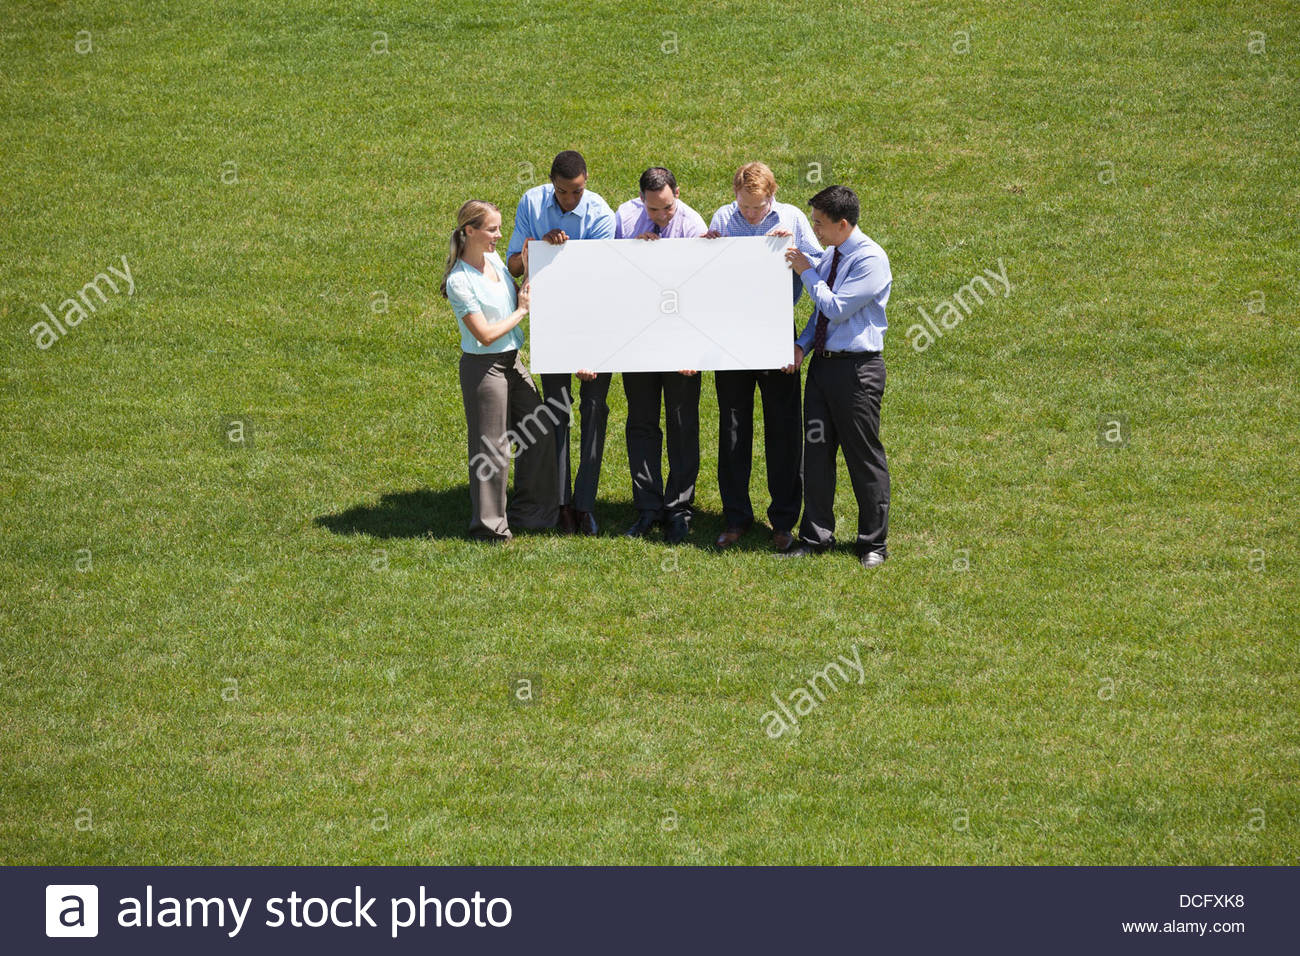 Group of business people displaying blank sign together - Stock Image